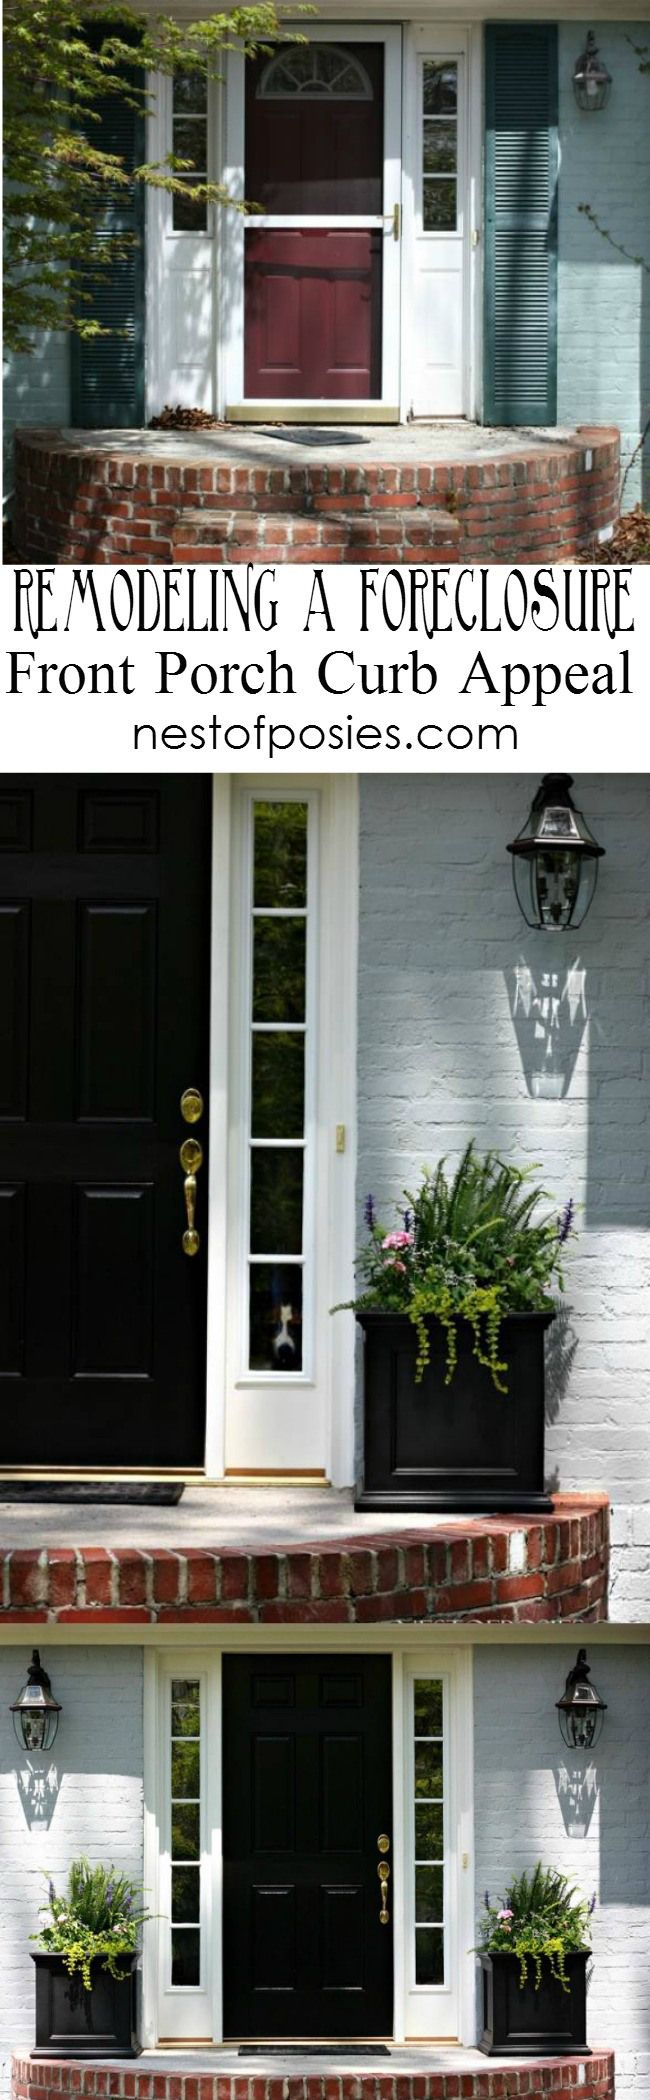 Remodeling a Foreclosure. Front Porch Curb Appeal